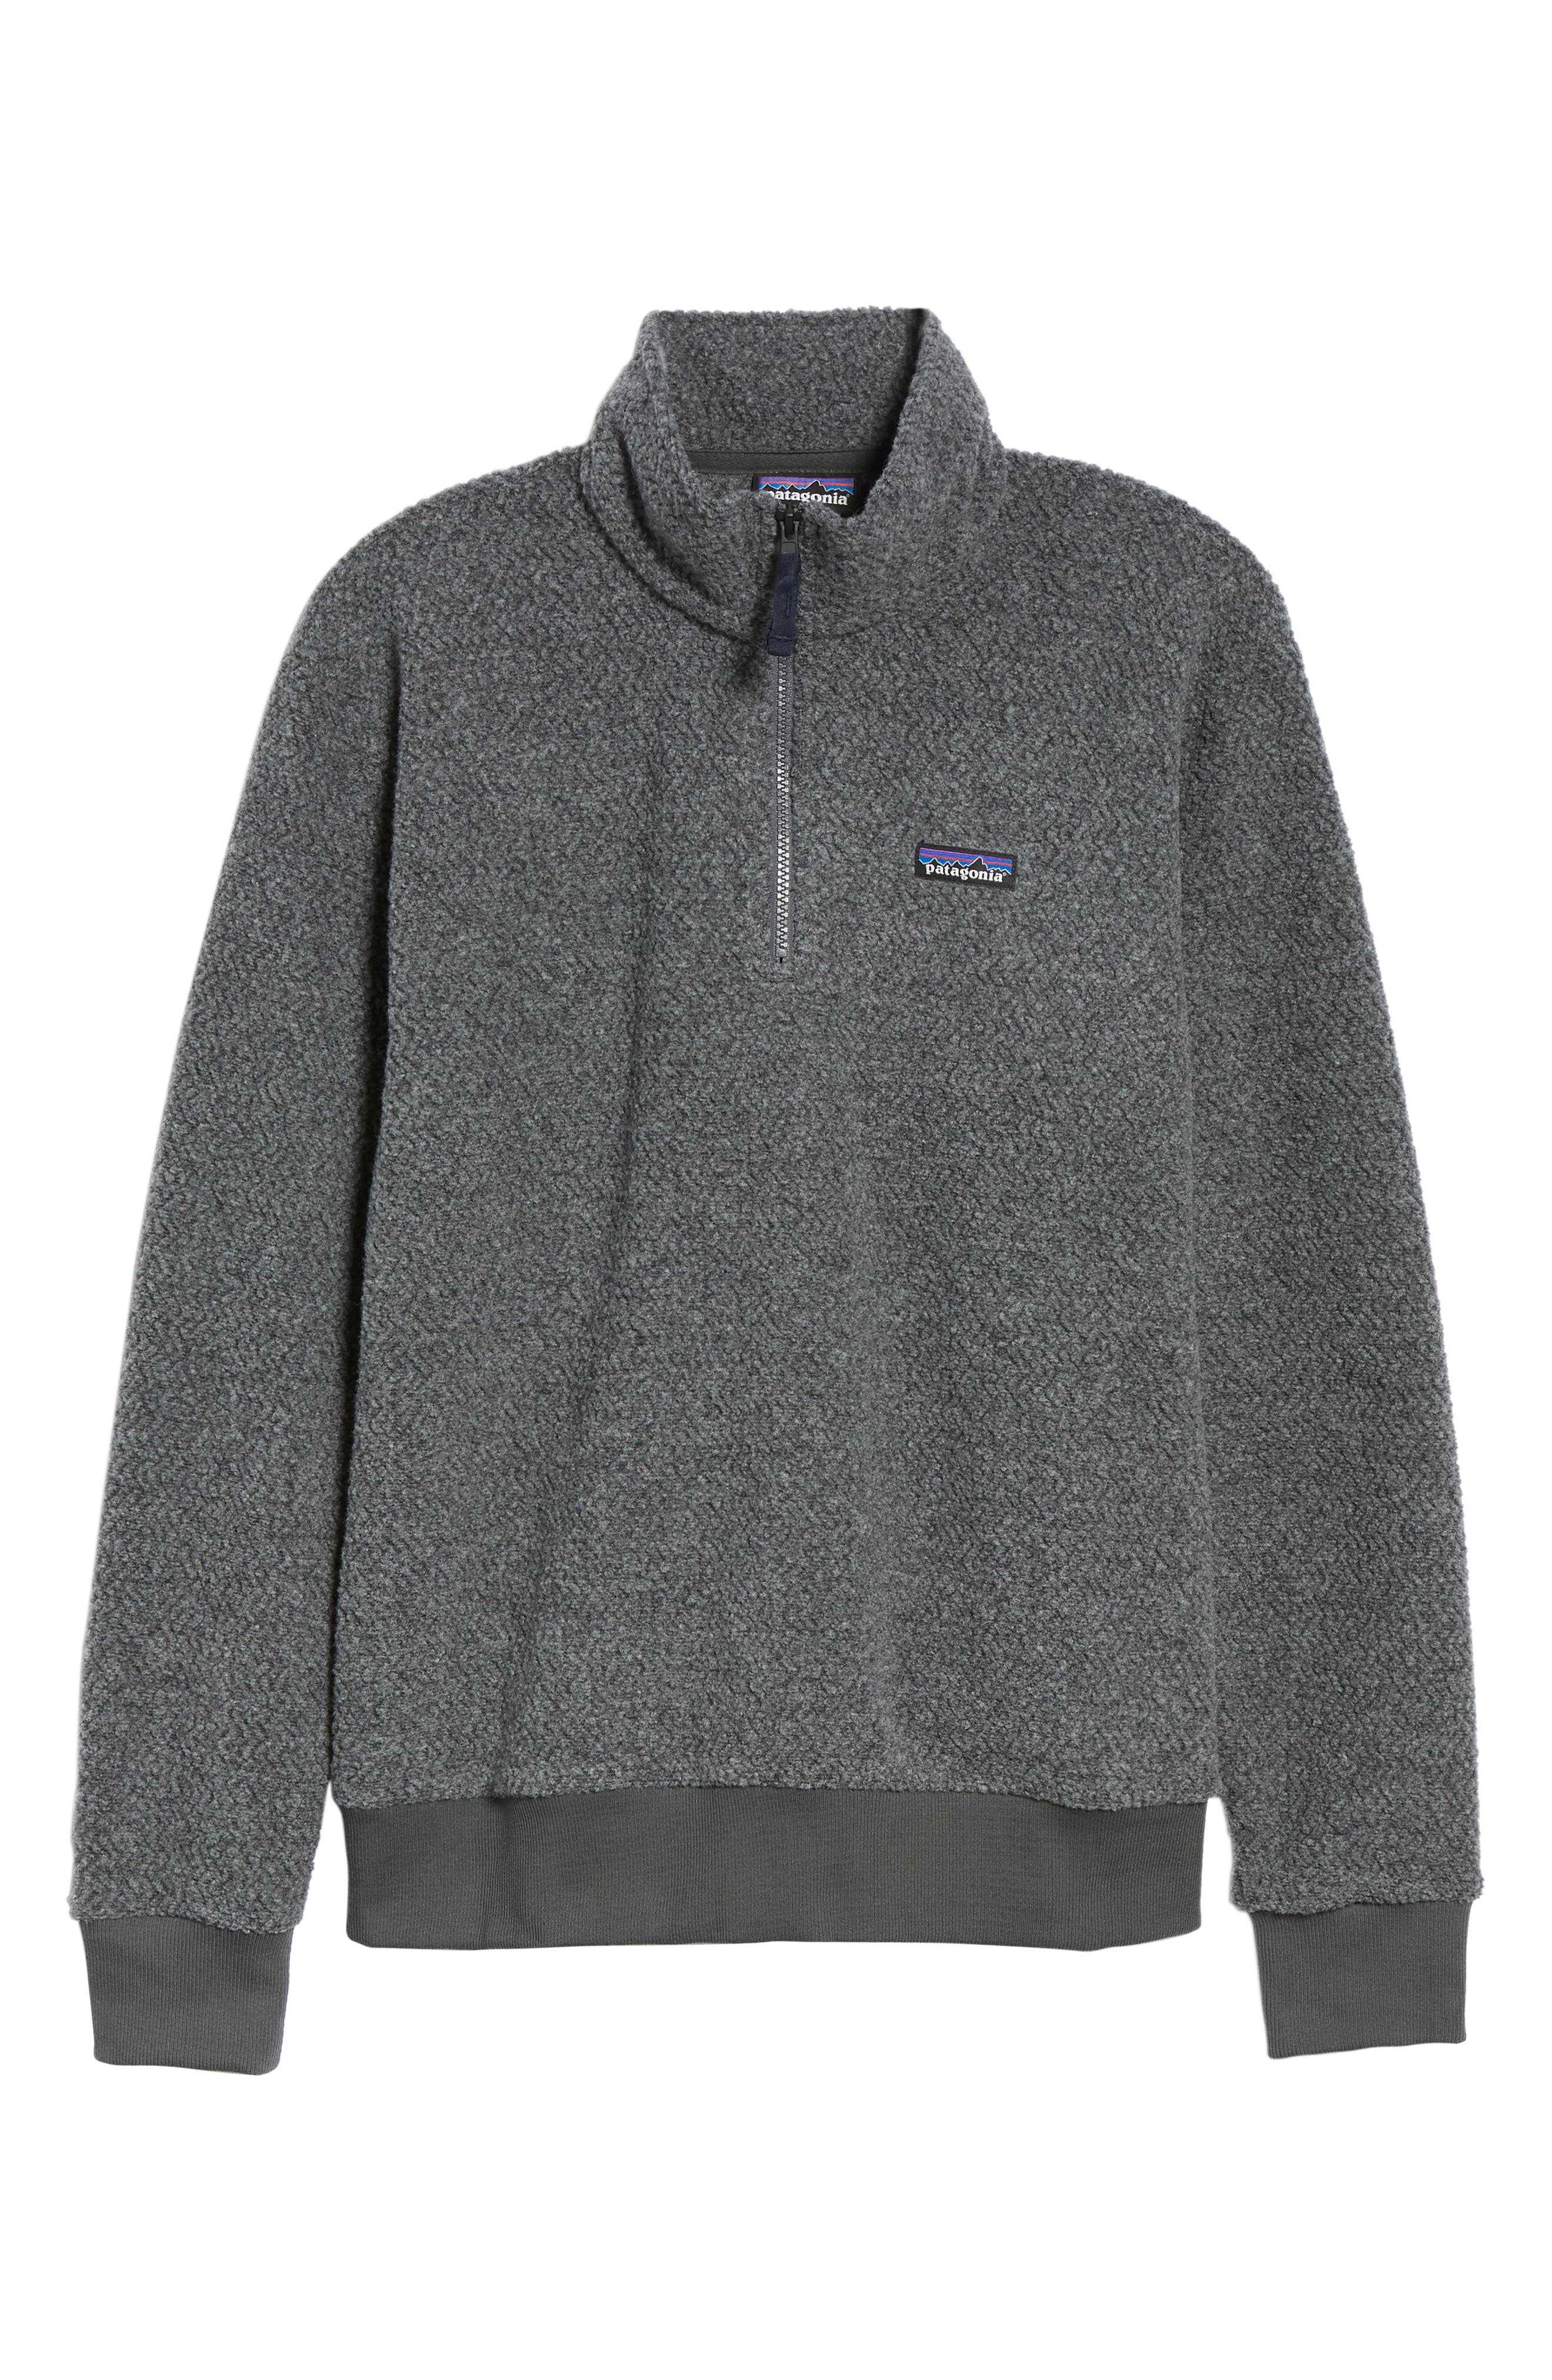 Woolyester Fleece Quarter Zip Pullover,                             Alternate thumbnail 6, color,                             FORGE GREY